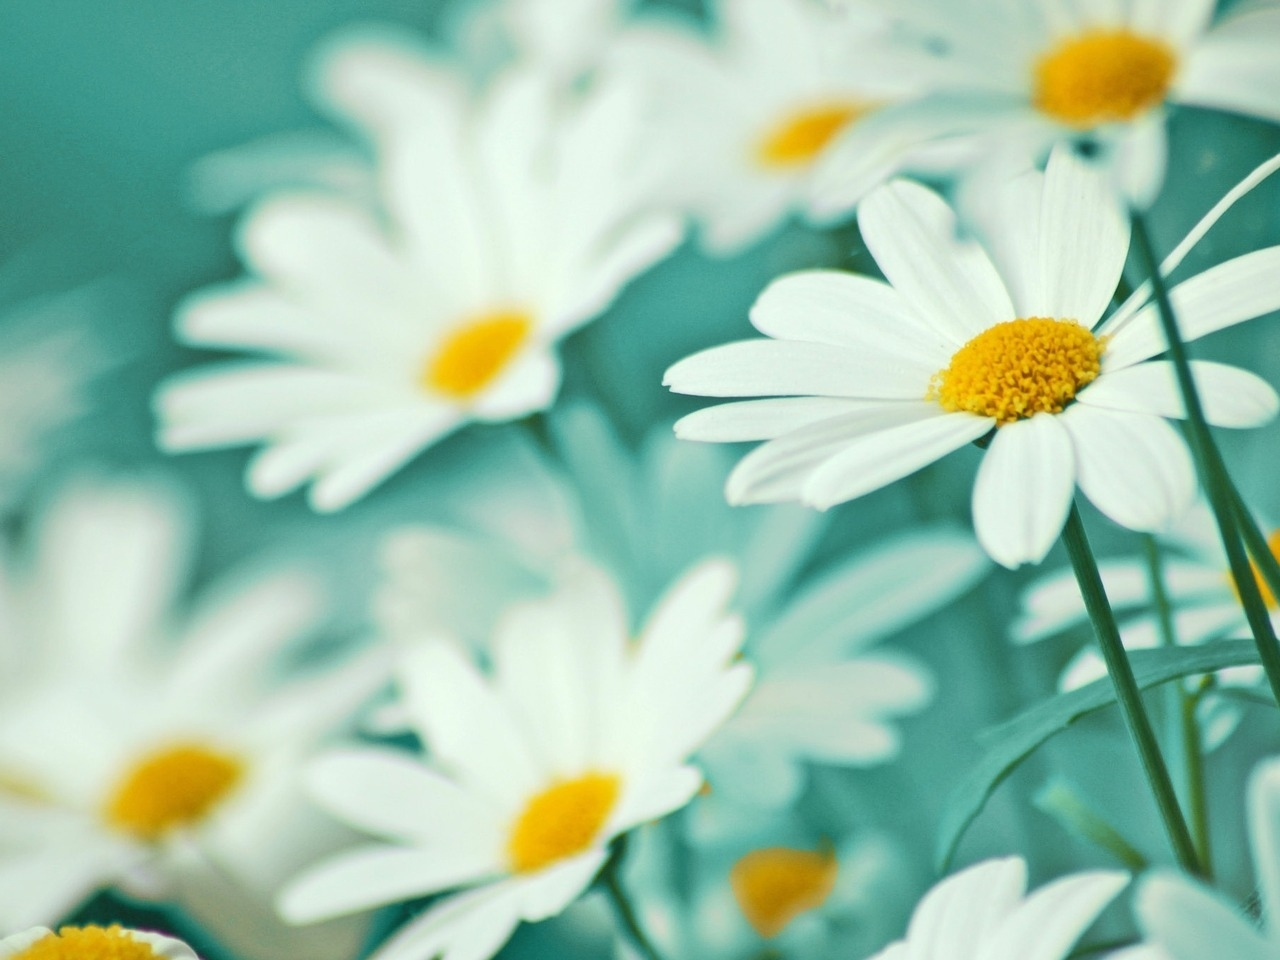 47478 download wallpaper Plants, Flowers, Camomile screensavers and pictures for free